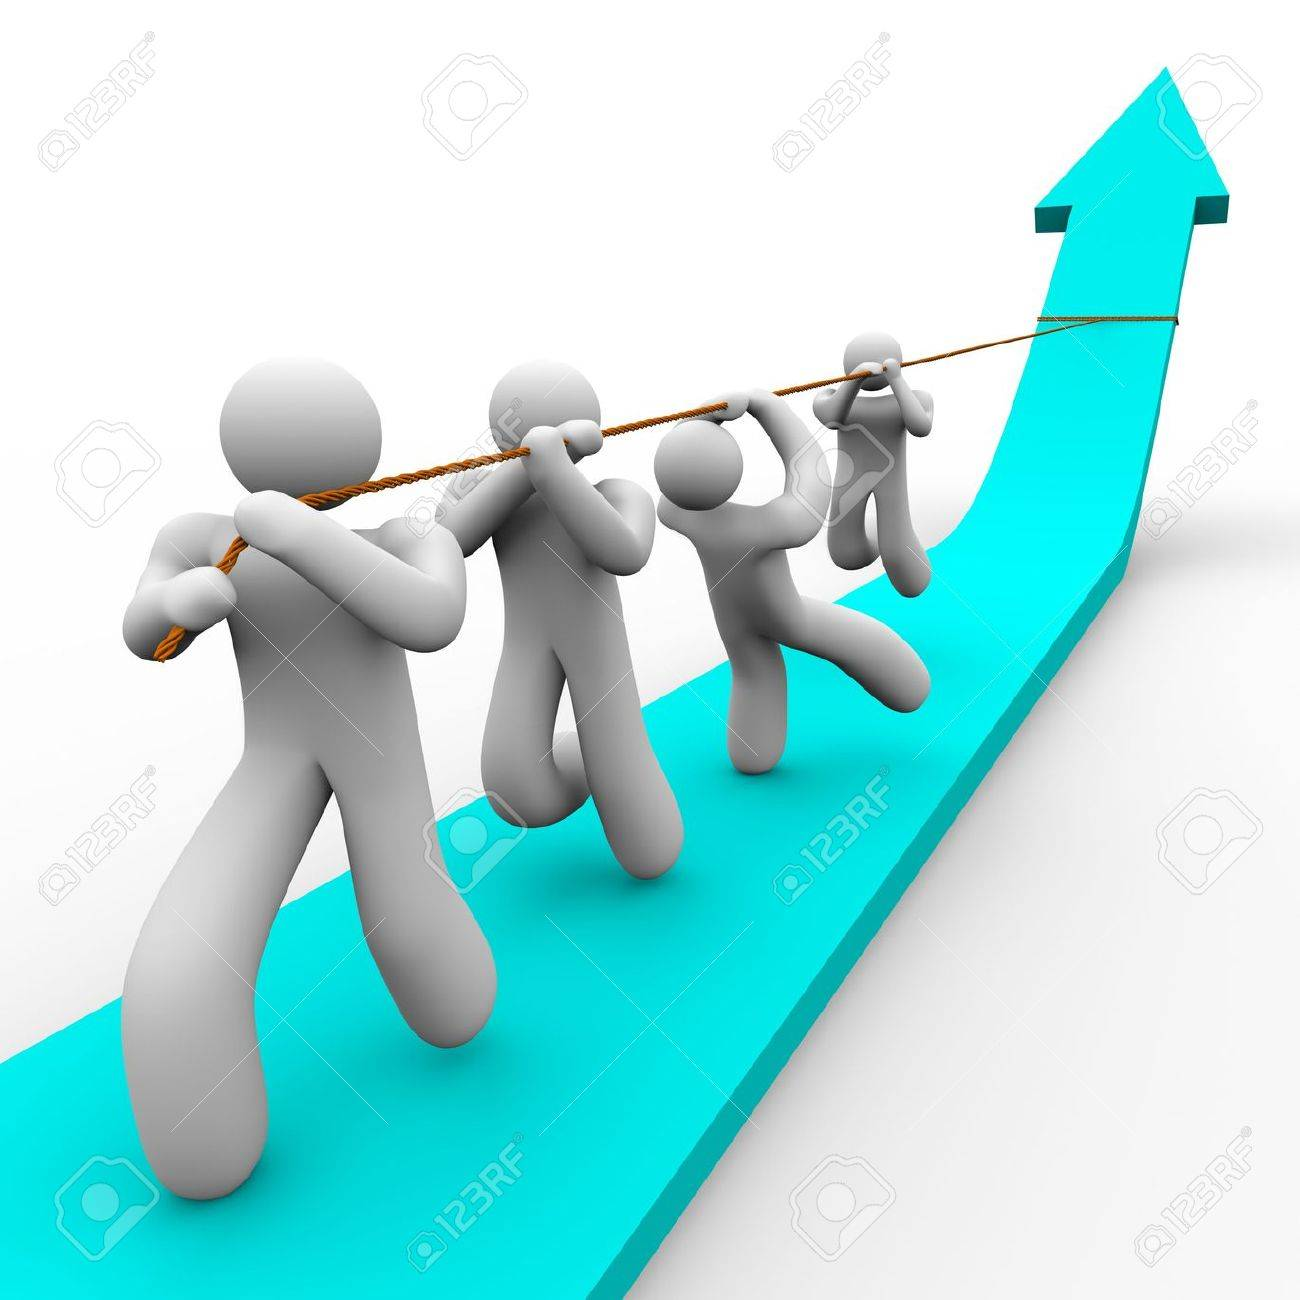 A team works together to pull up a growth arrow Stock Photo - 4182608